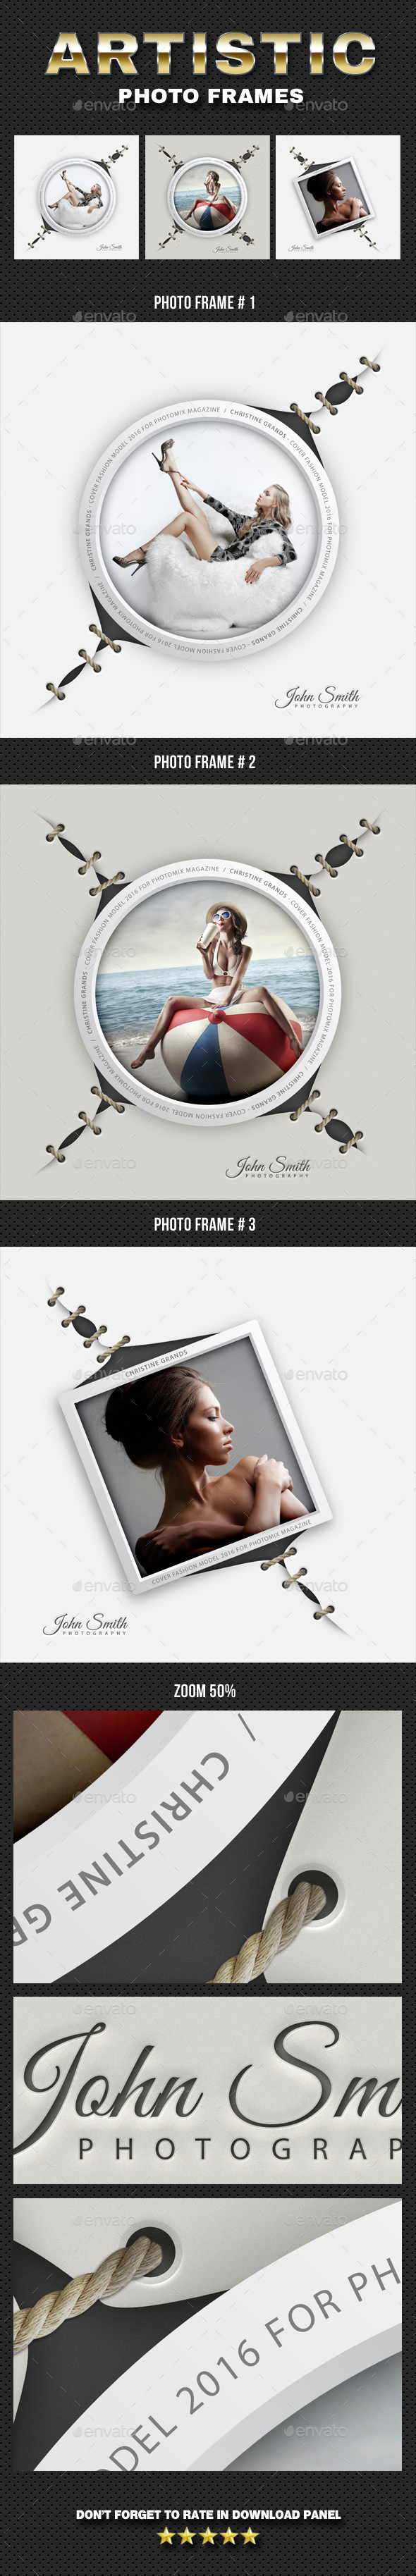 Artistic Photo Frame 04 - Photo Templates Graphics